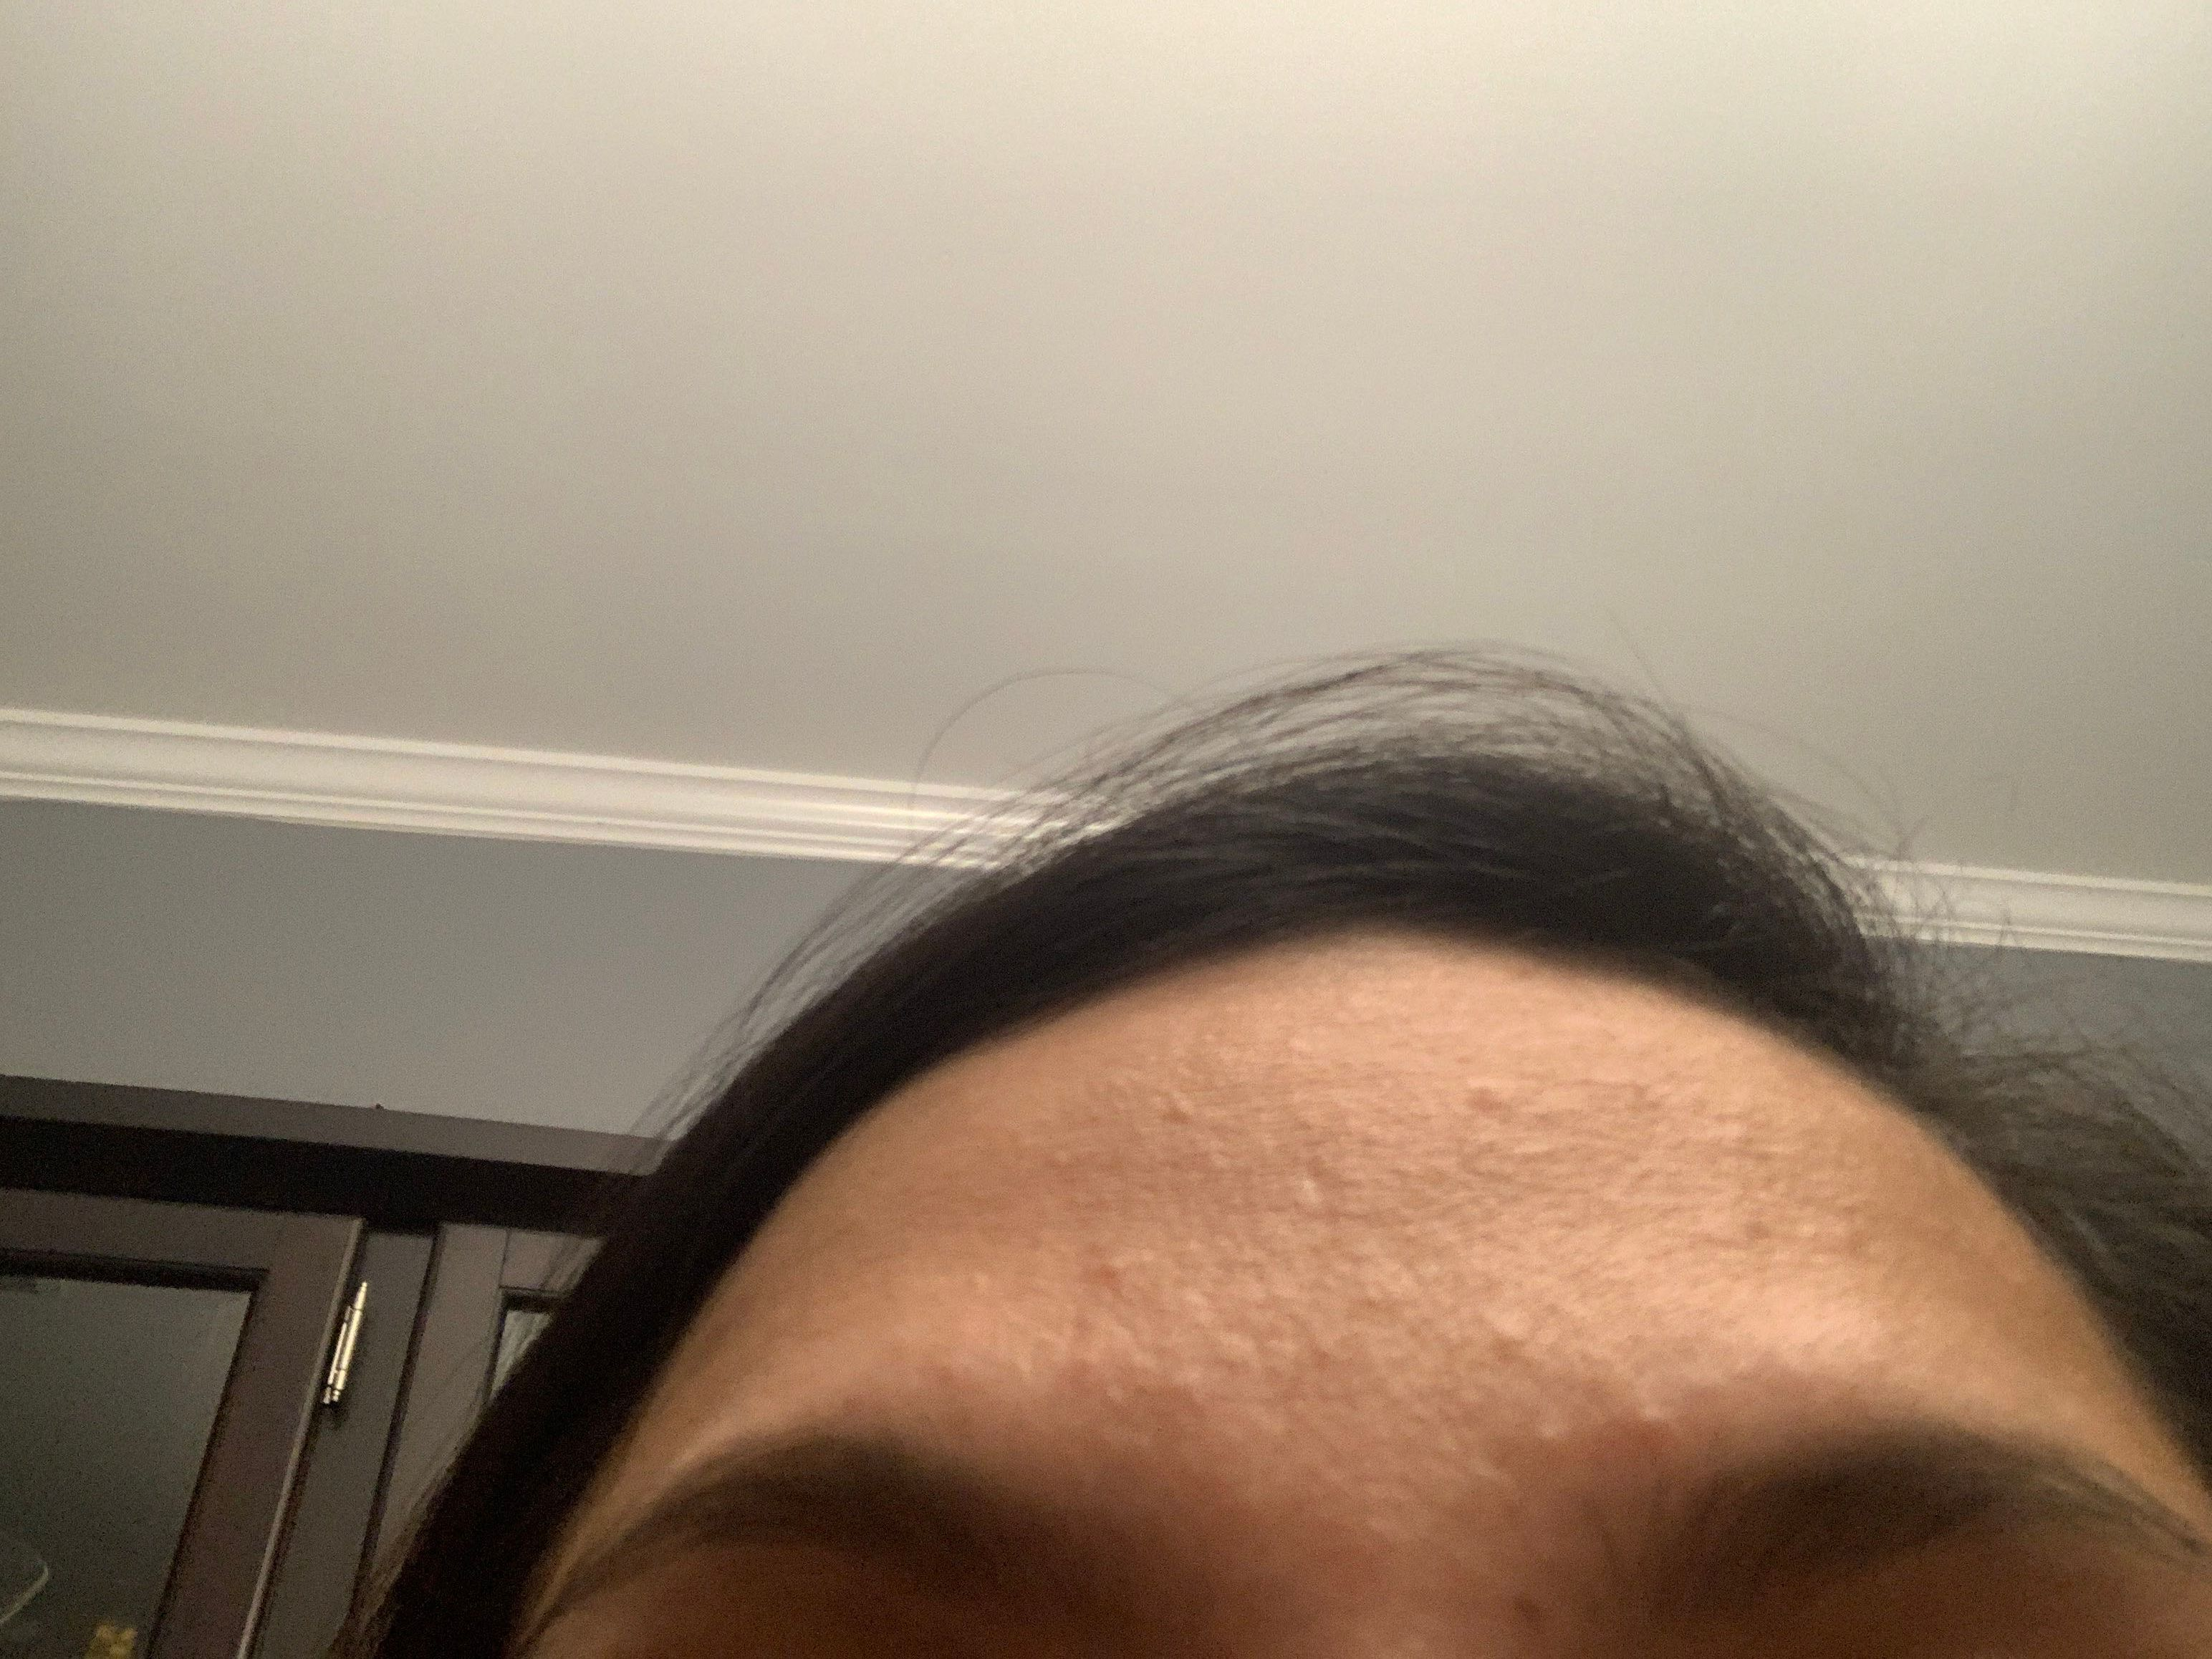 Subclinical forehead get on rid acne of How to